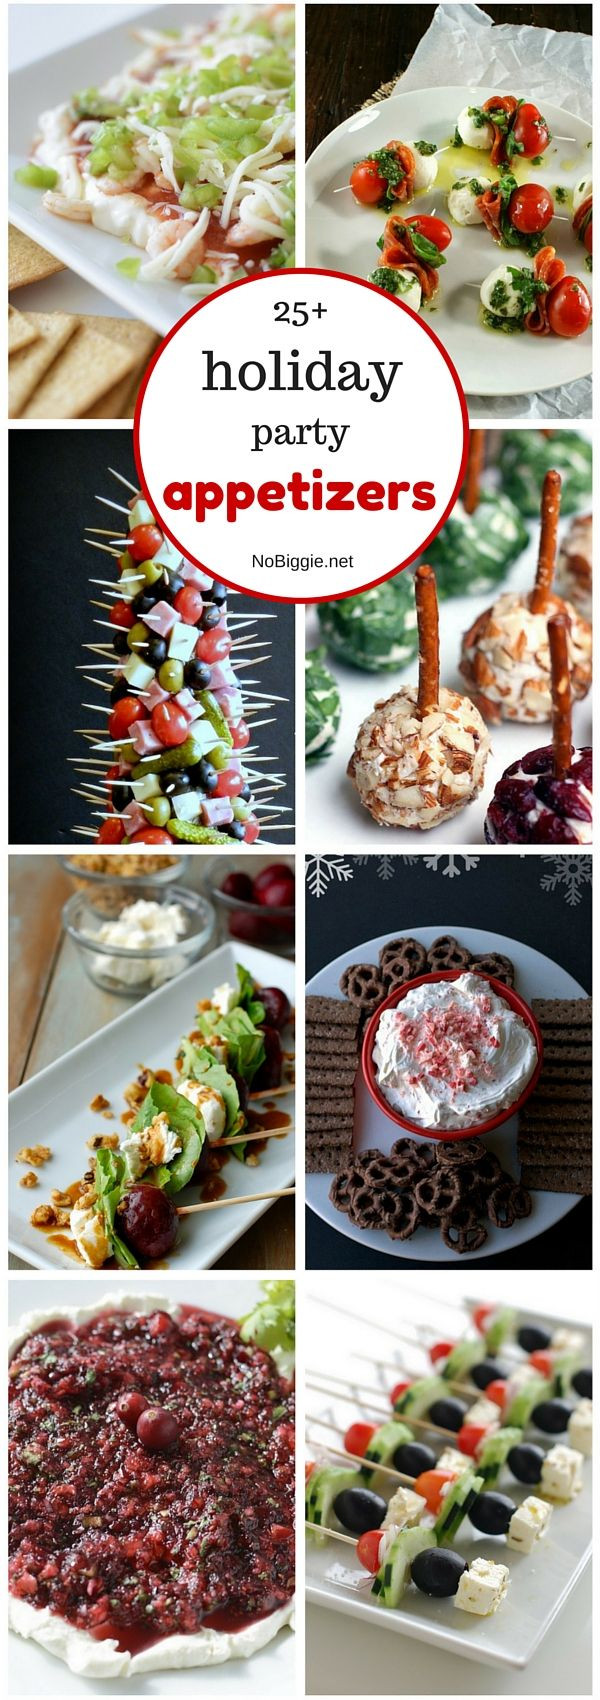 Christmas Party Appetizers Pinterest  1000 ideas about Christmas Party Appetizers on Pinterest